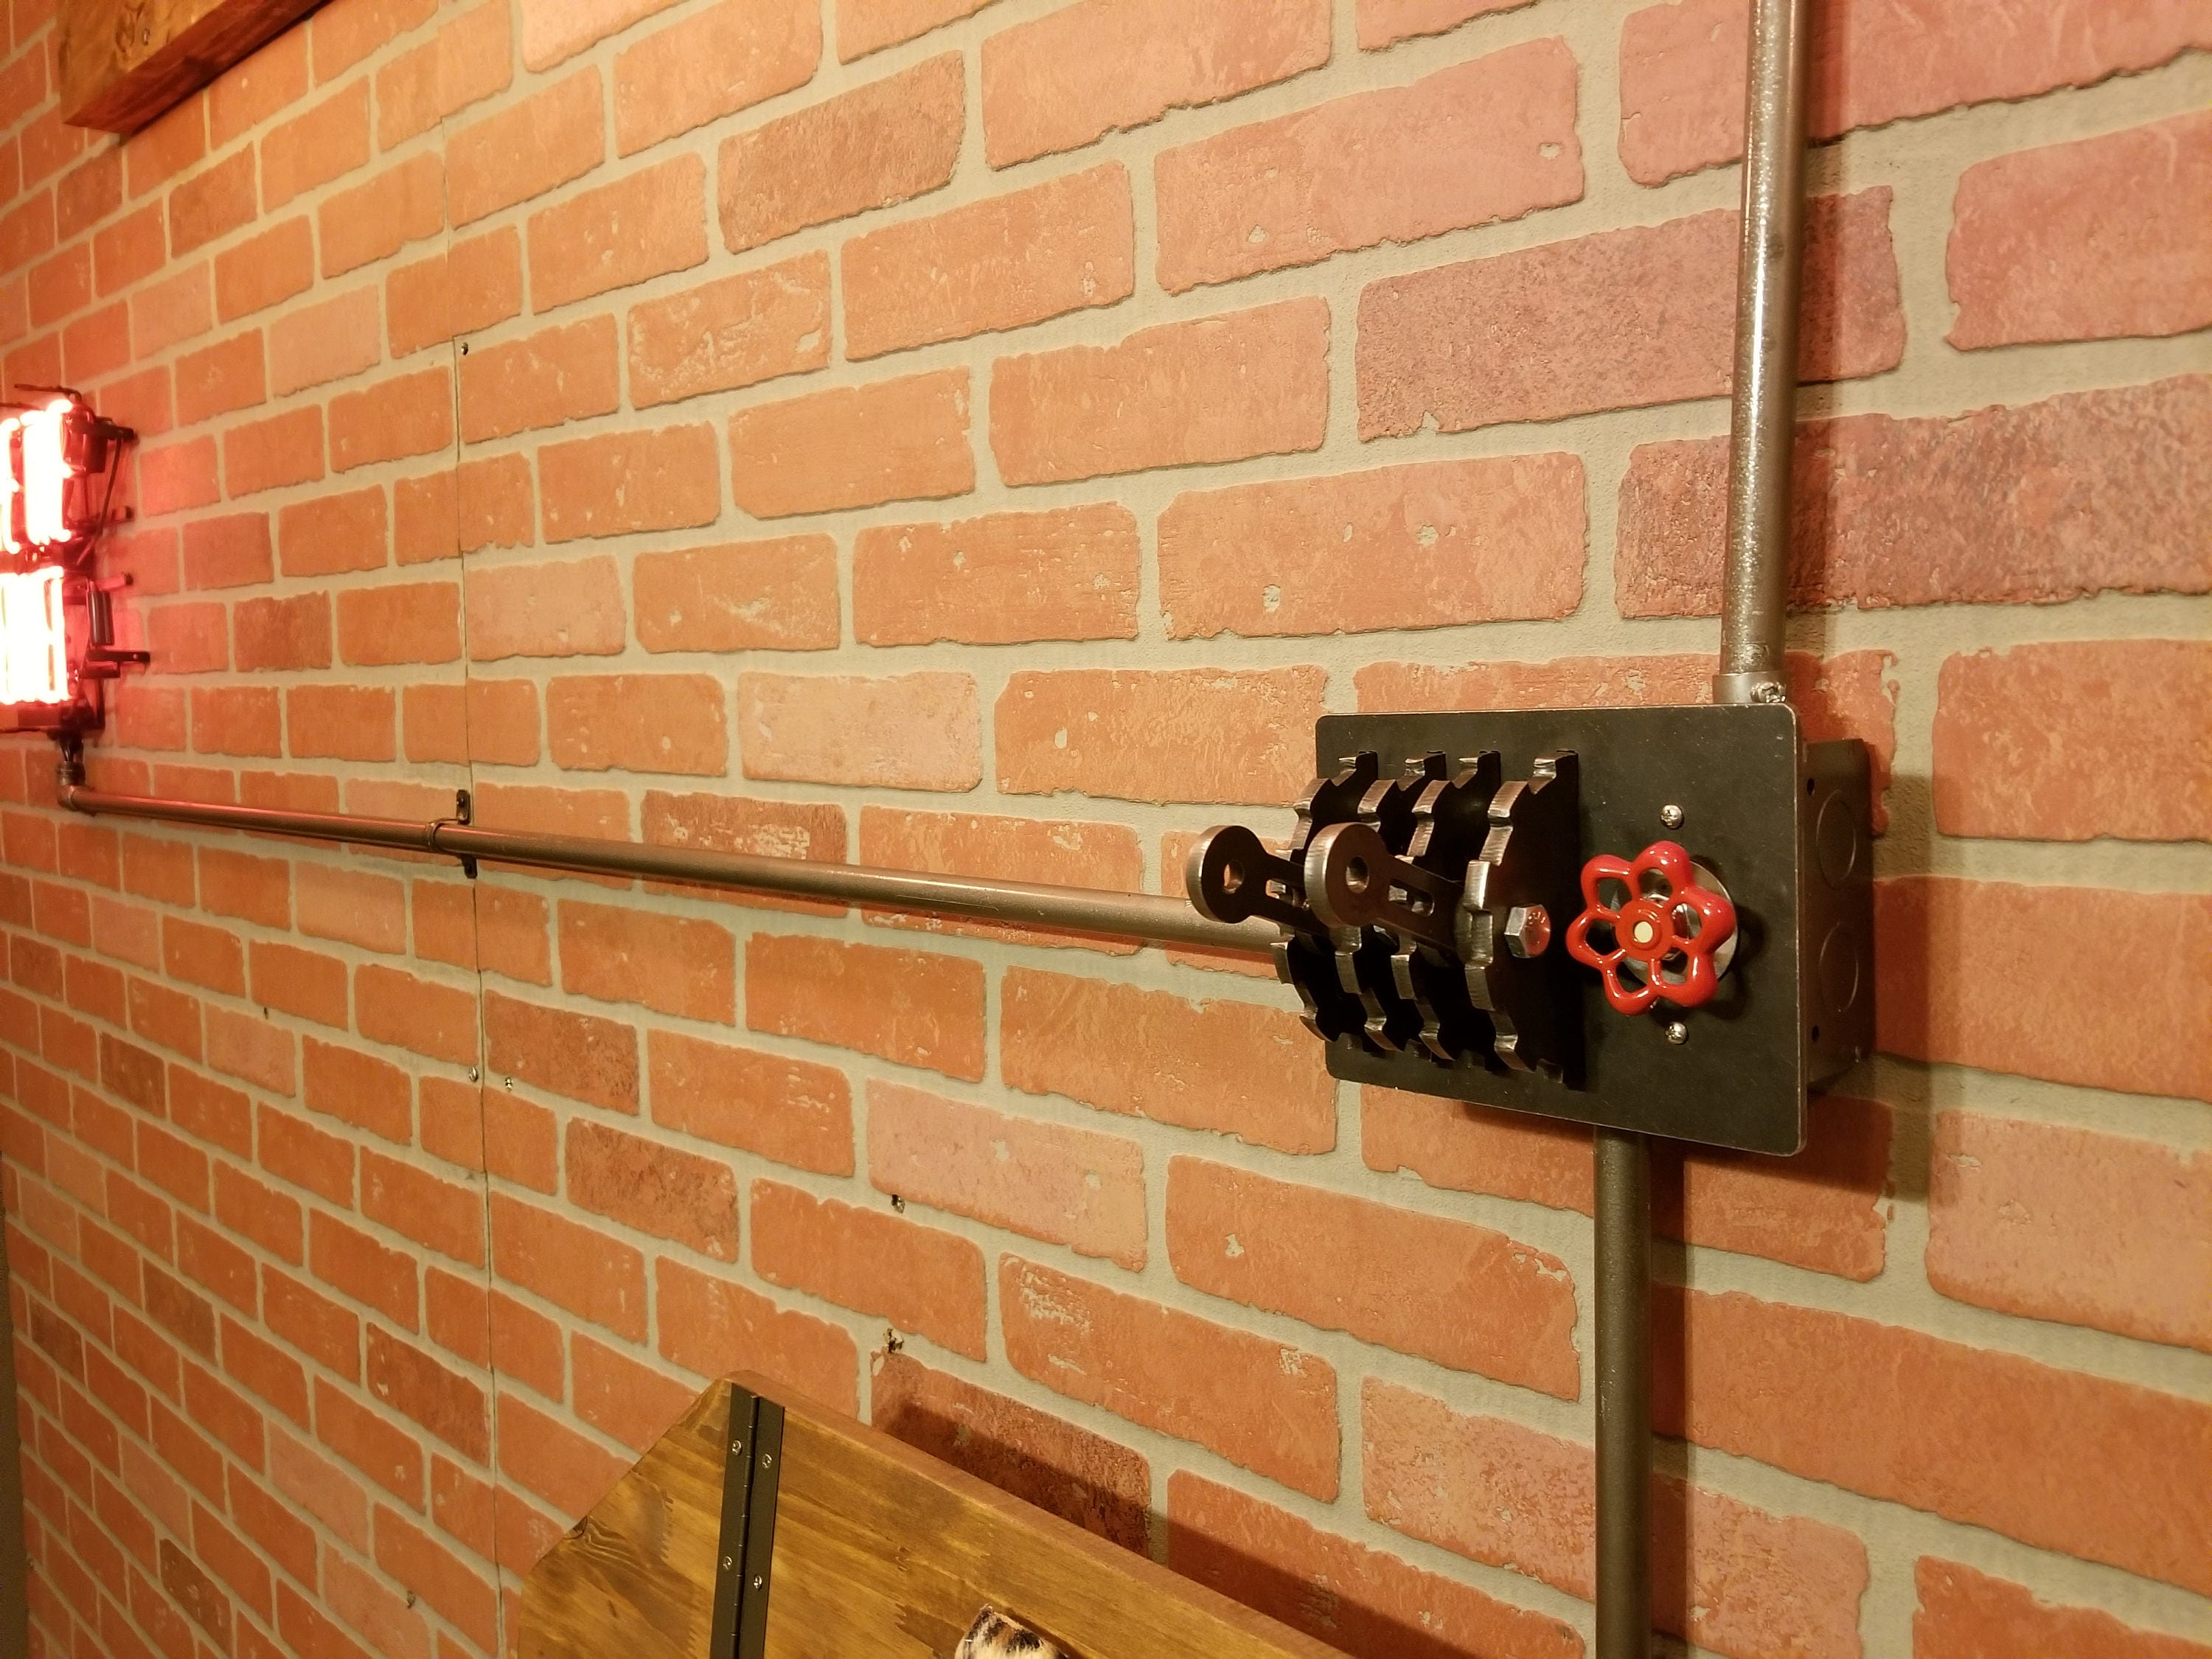 Industrial Triple-Gang Light Switch Cover with Dimmer Sillcock